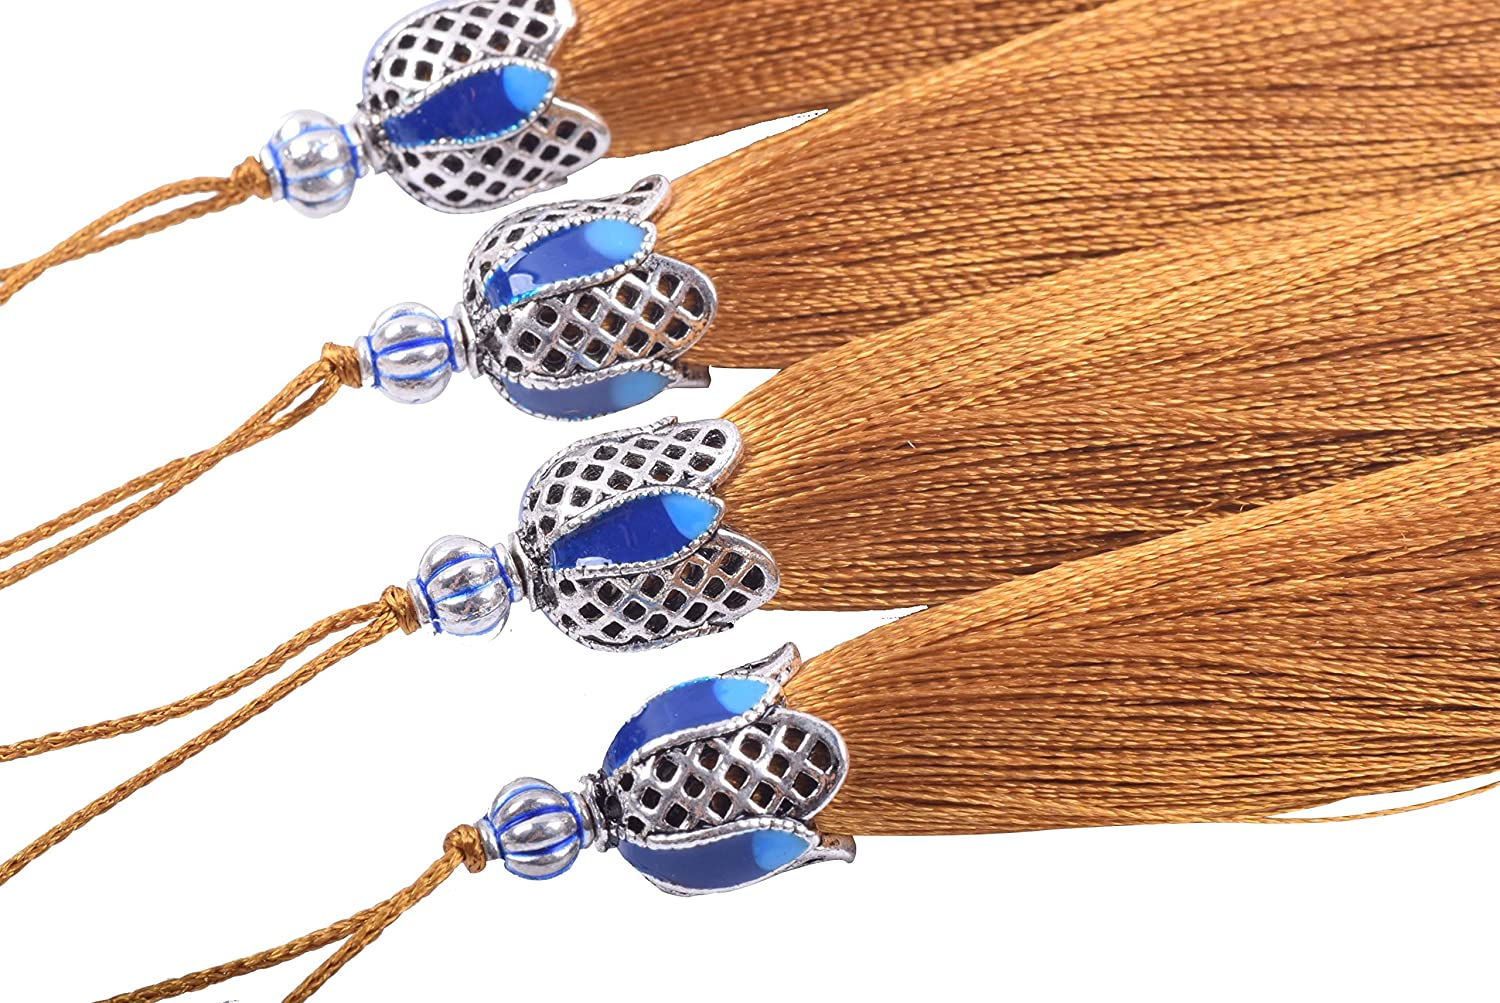 Craft Tassels with Hollowed Antique Silver Caps and Hanging Loops for Jewelry Making Crafts Designs KONMAY 10PCS 8.5cm 3.4 Mixed Randomly Decorations